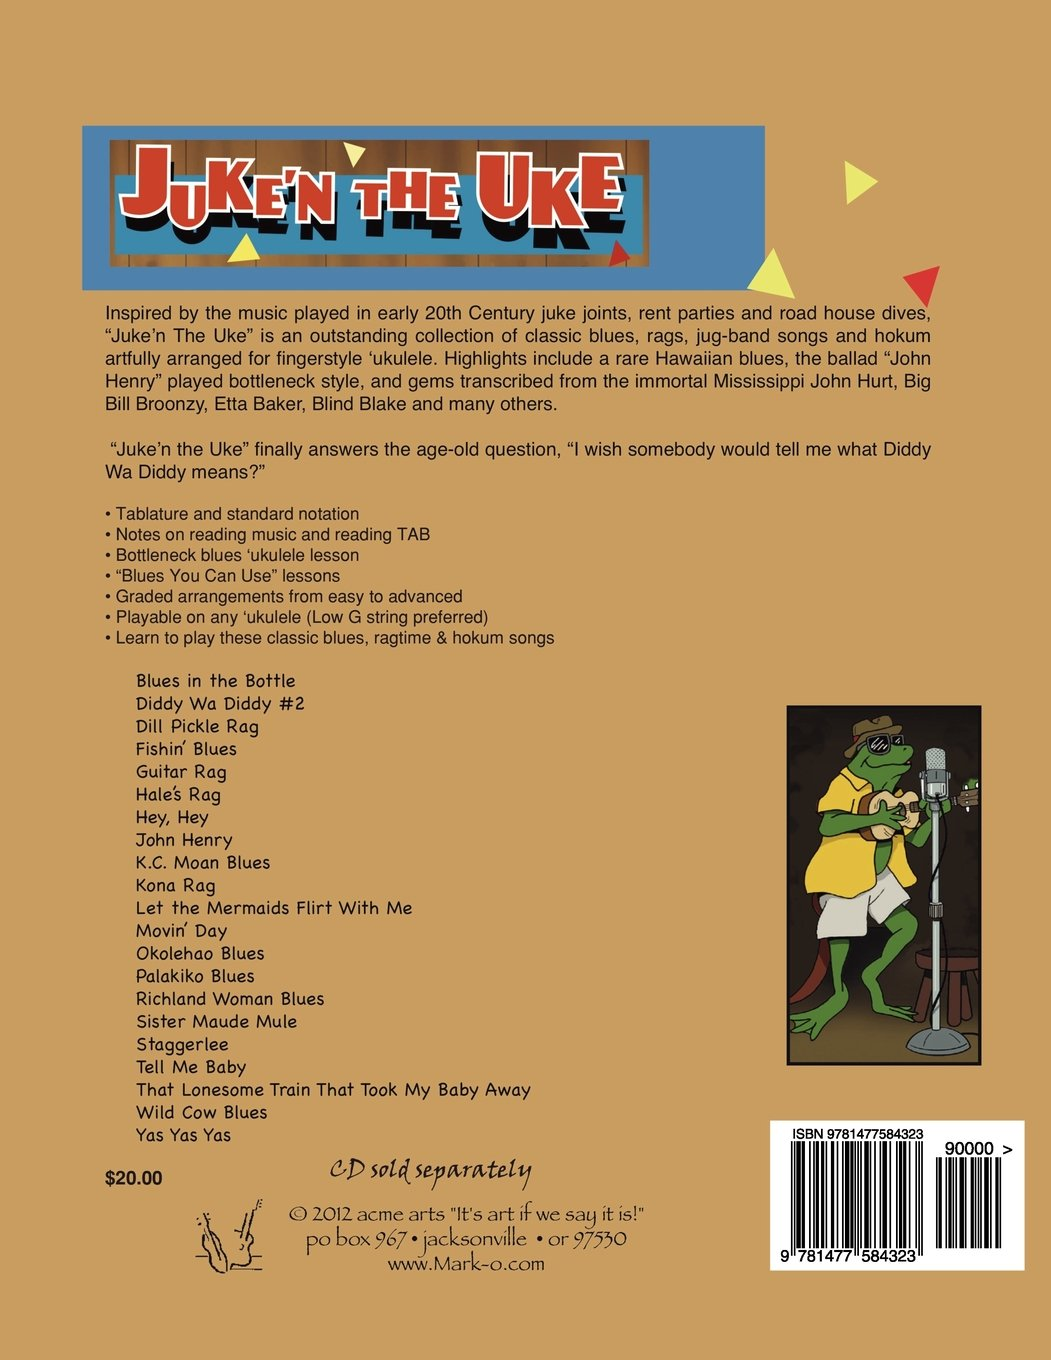 Juken the uke blues ragtime hokum for ukulele complete juken the uke blues ragtime hokum for ukulele complete tablature for the cd more mark kailana nelson 9781477584323 amazon books hexwebz Choice Image